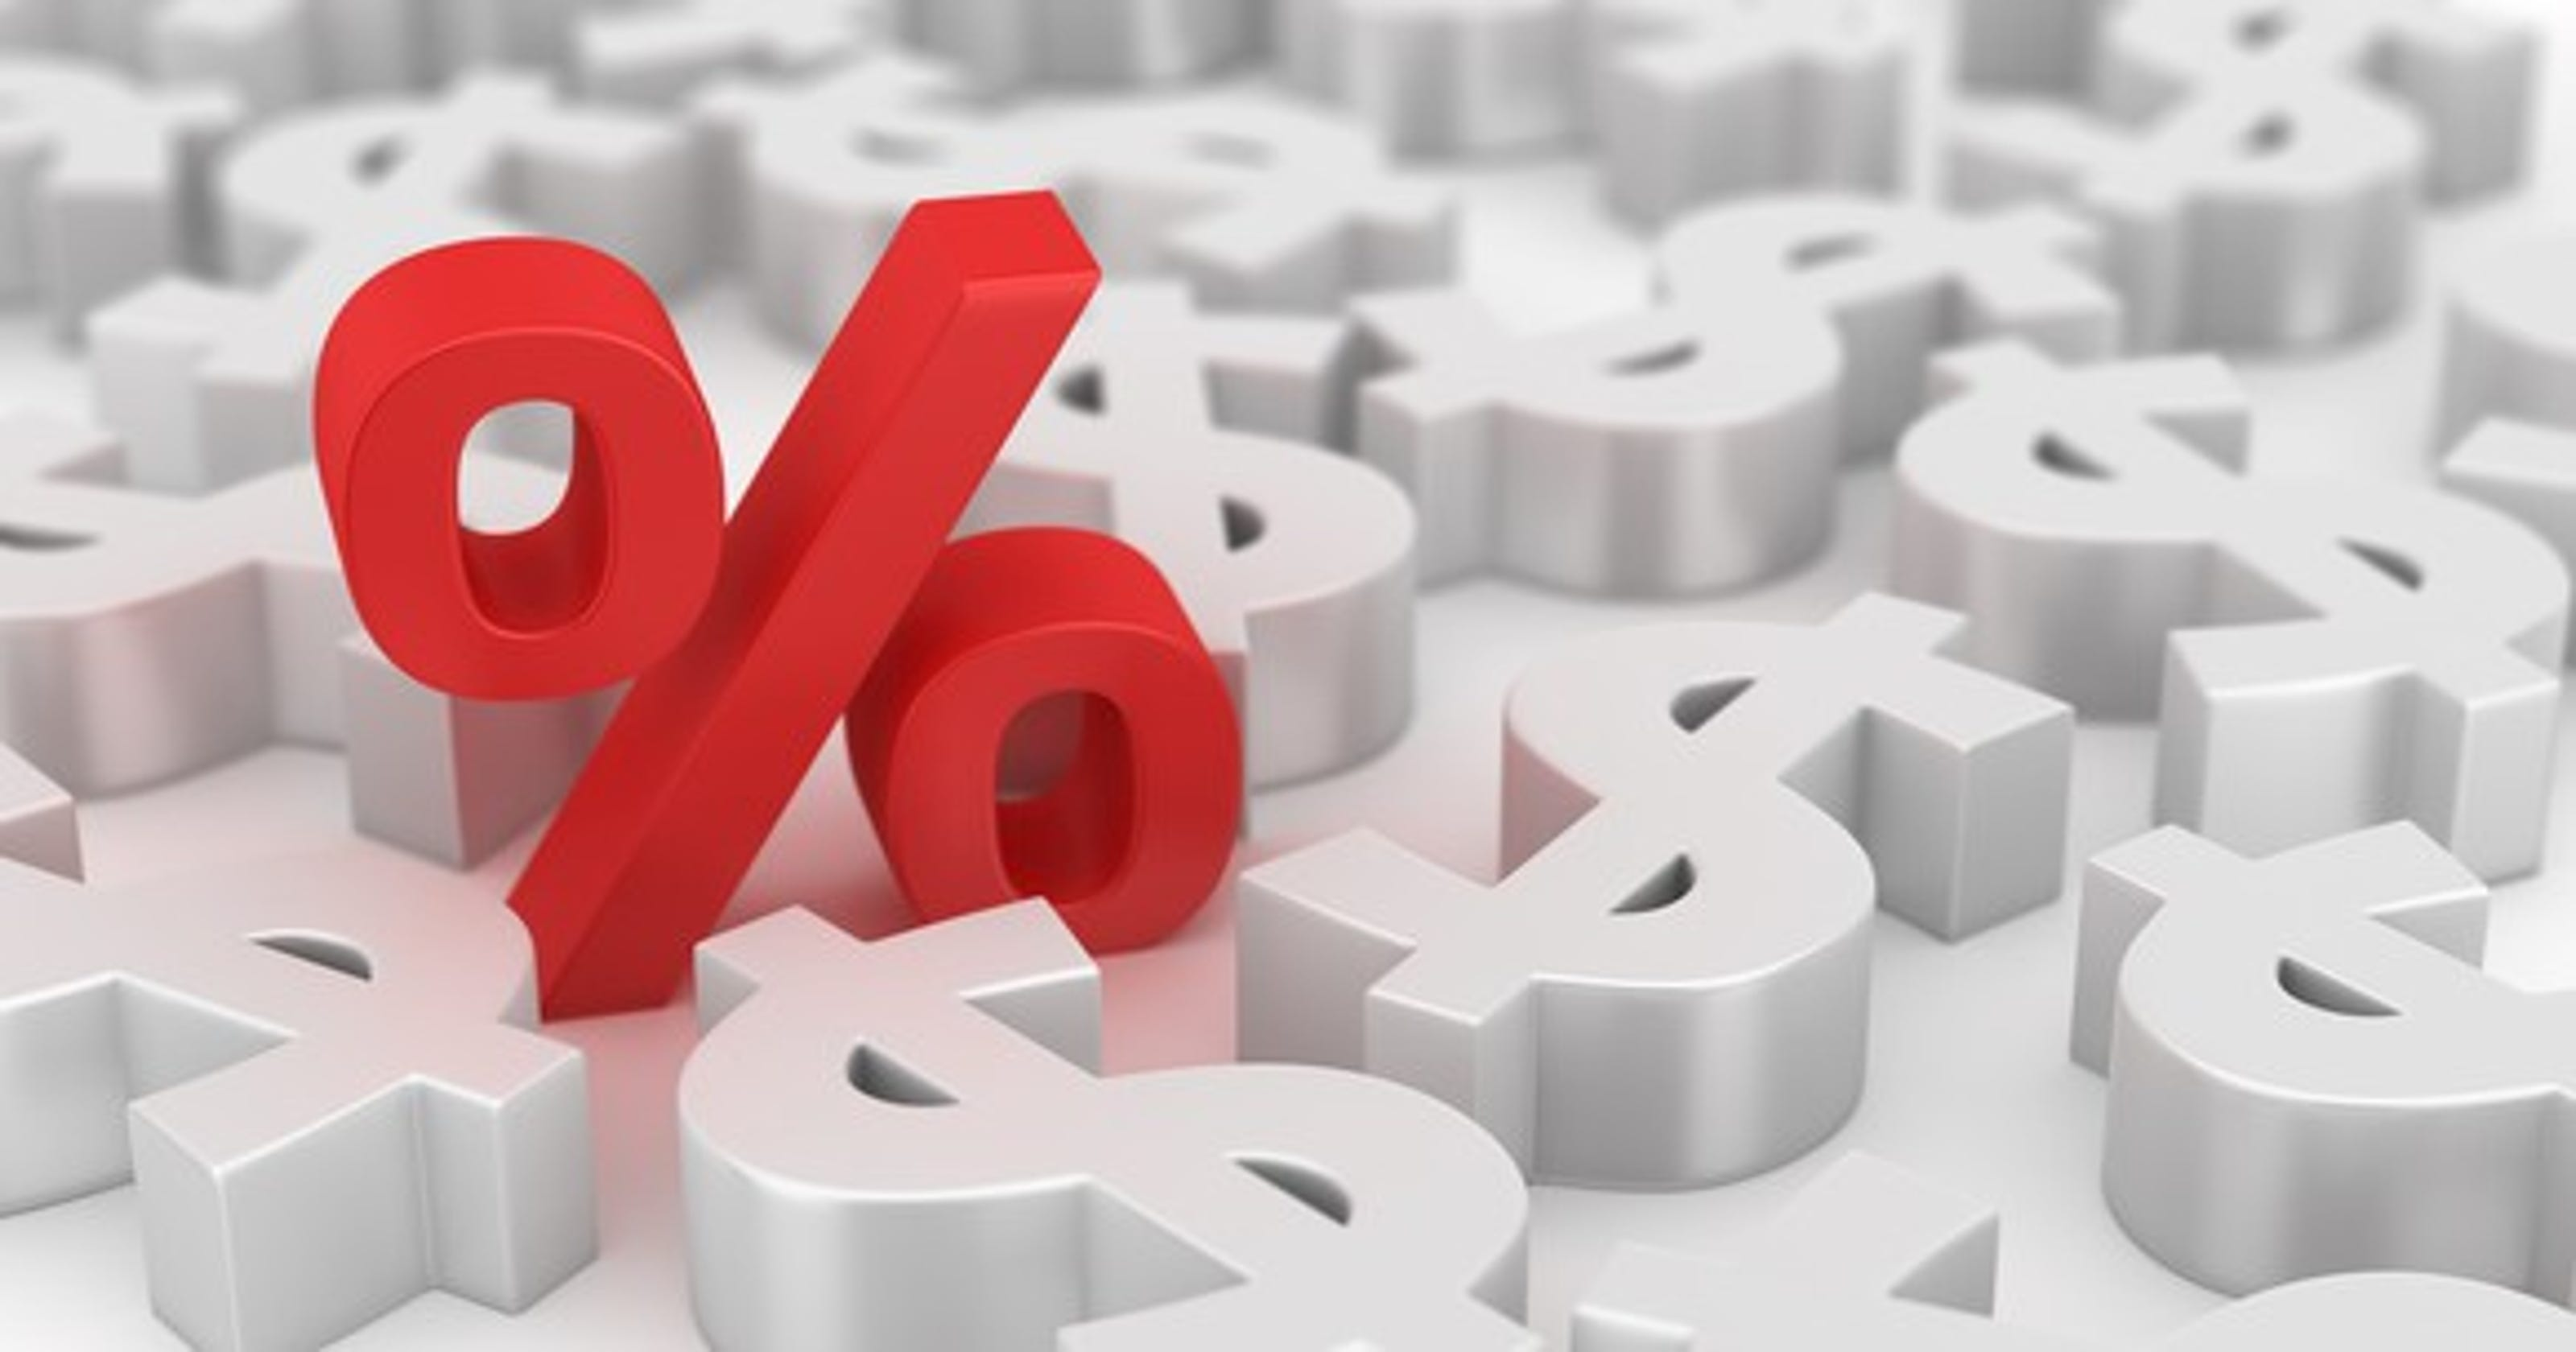 15 ways to benefit from rising interest rates